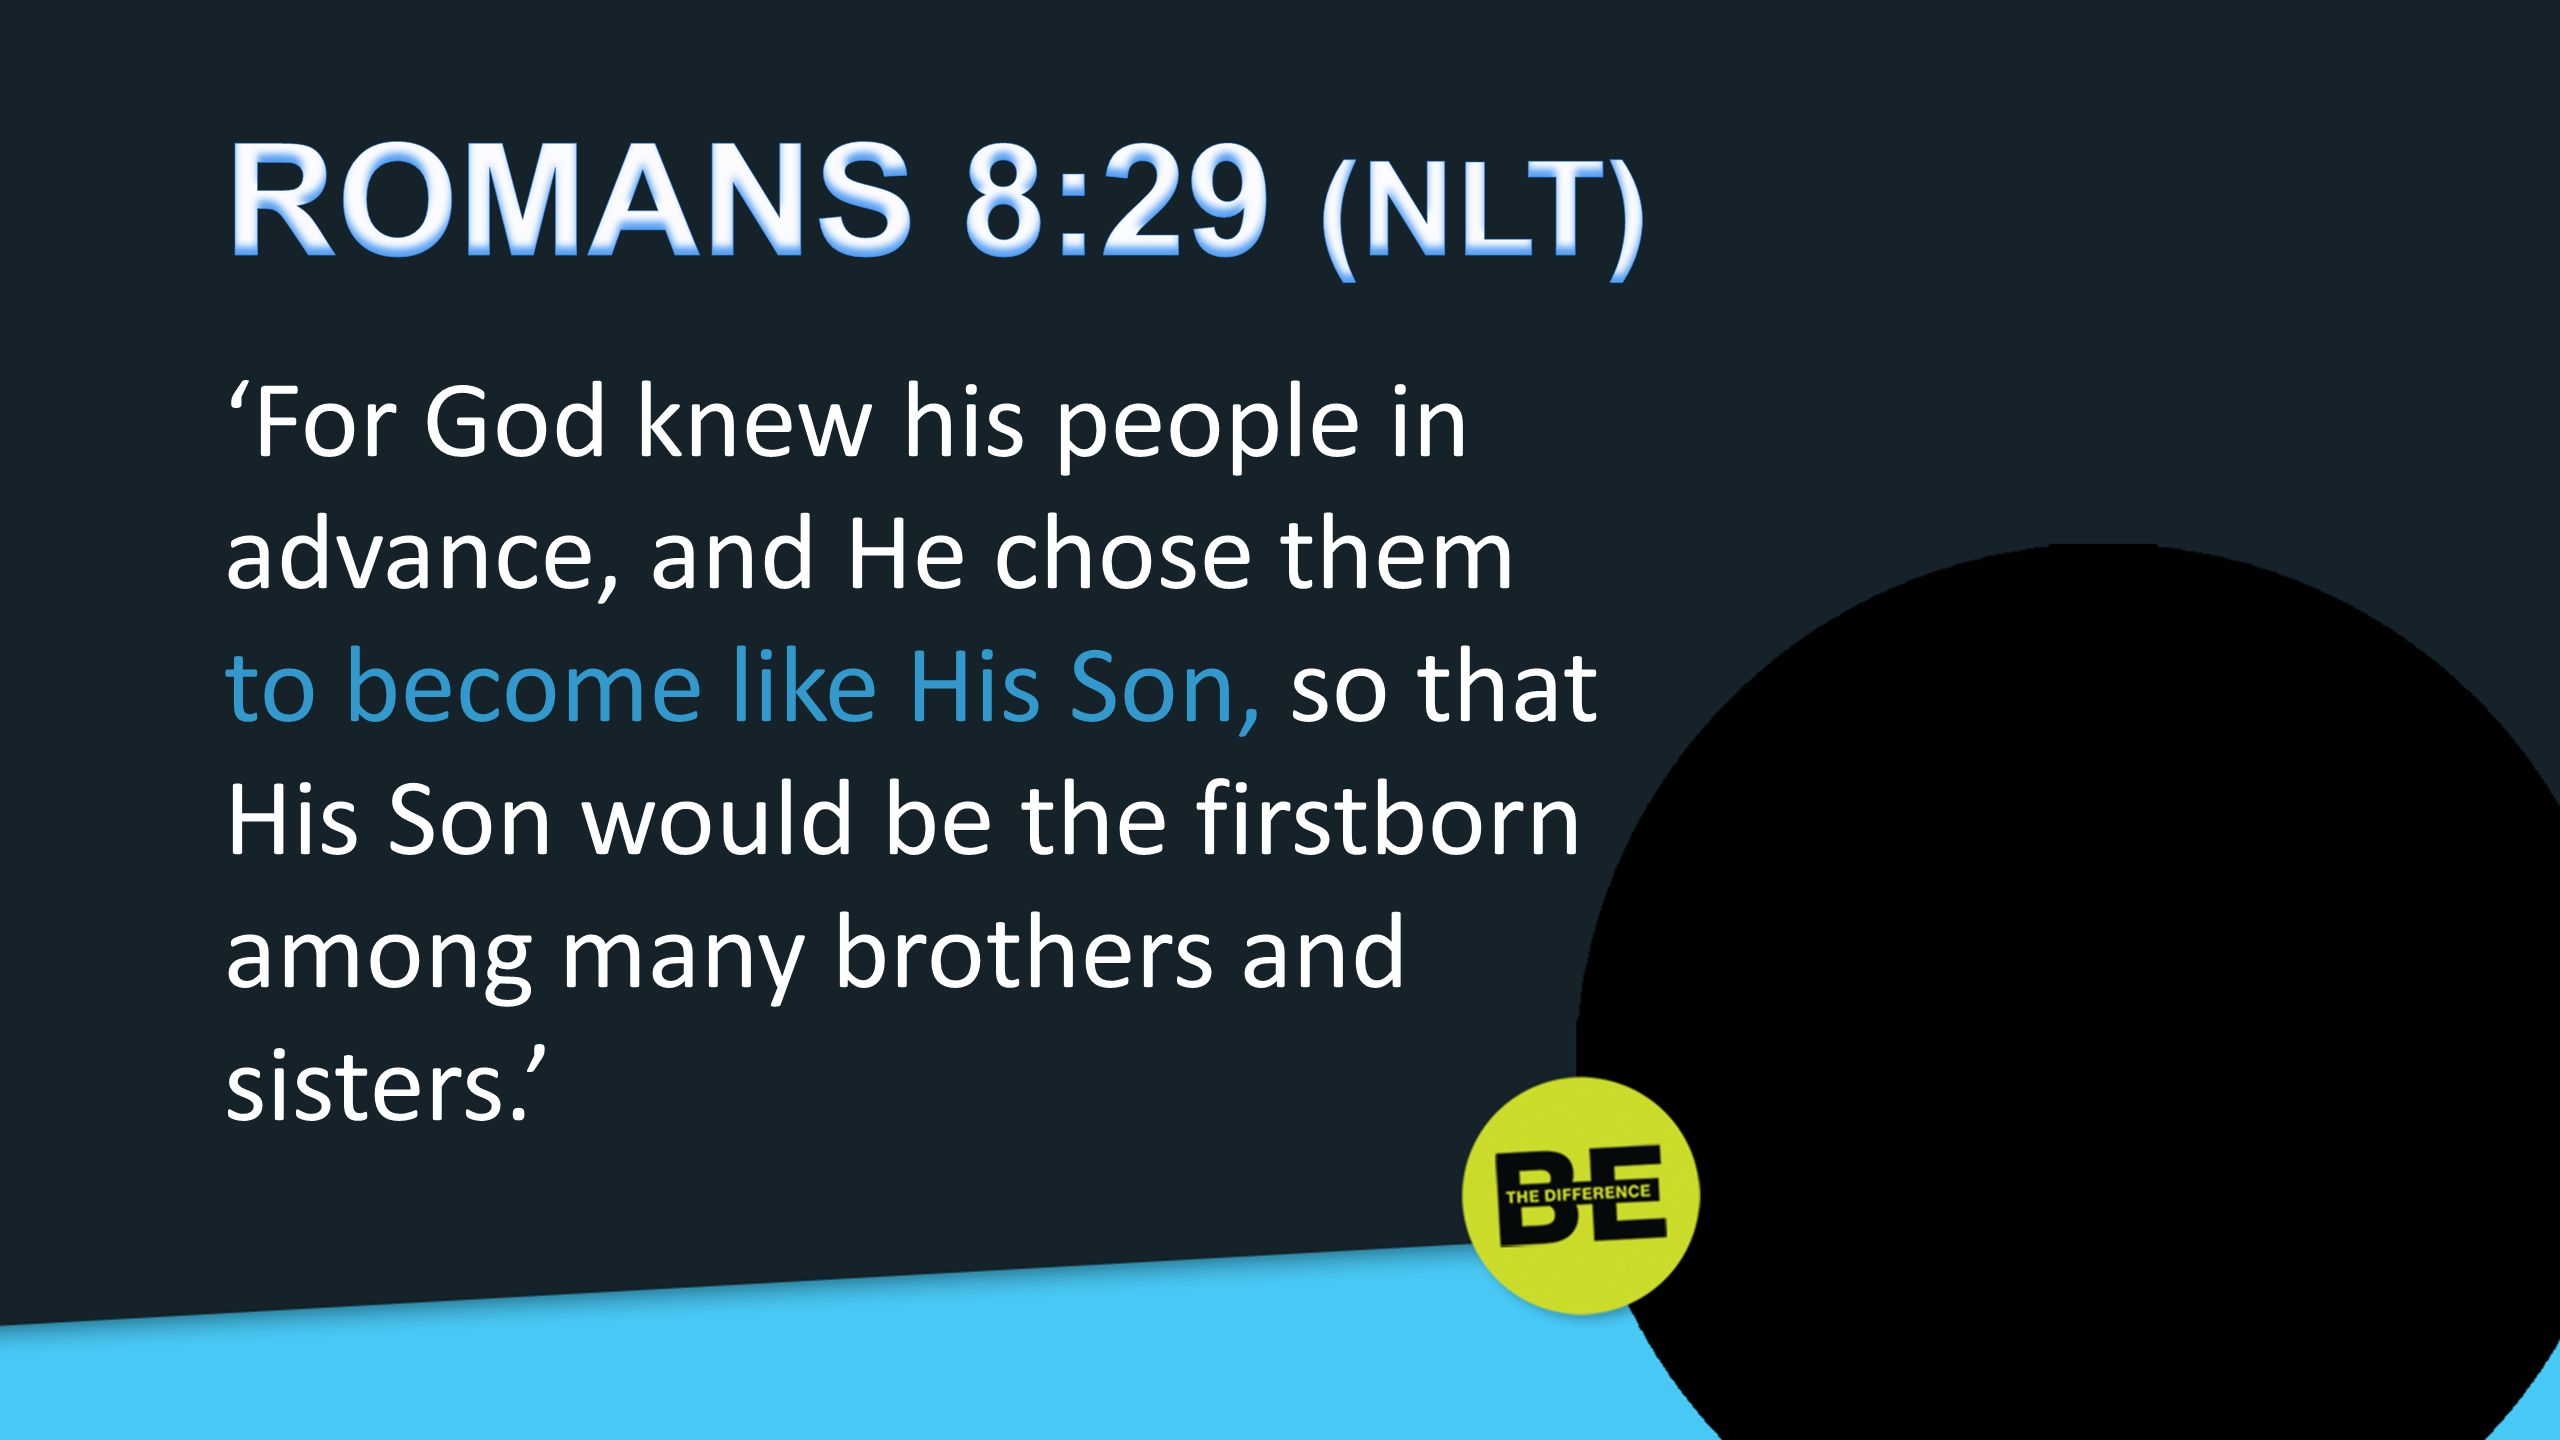 'For God knew his people in advance, and He chose them to become like His Son, so that His Son would be the firstborn among many brothers and sisters.